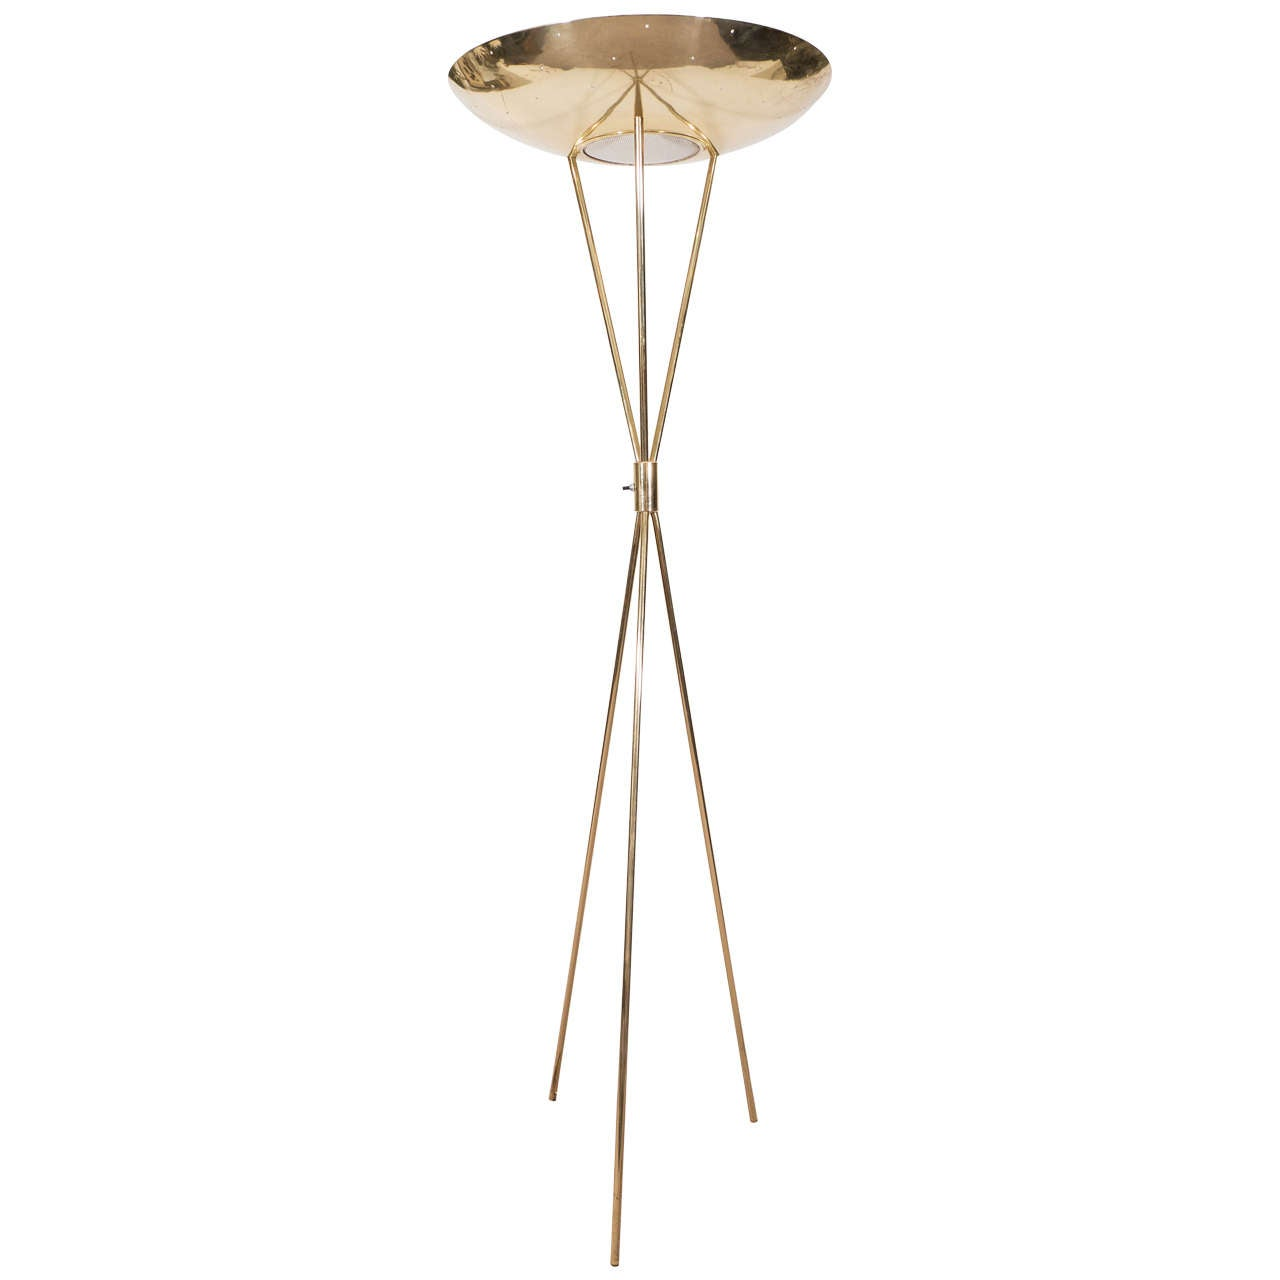 Midcentury Brass Torchiere Tripod Floor Lamp by Gerald Thurston ...